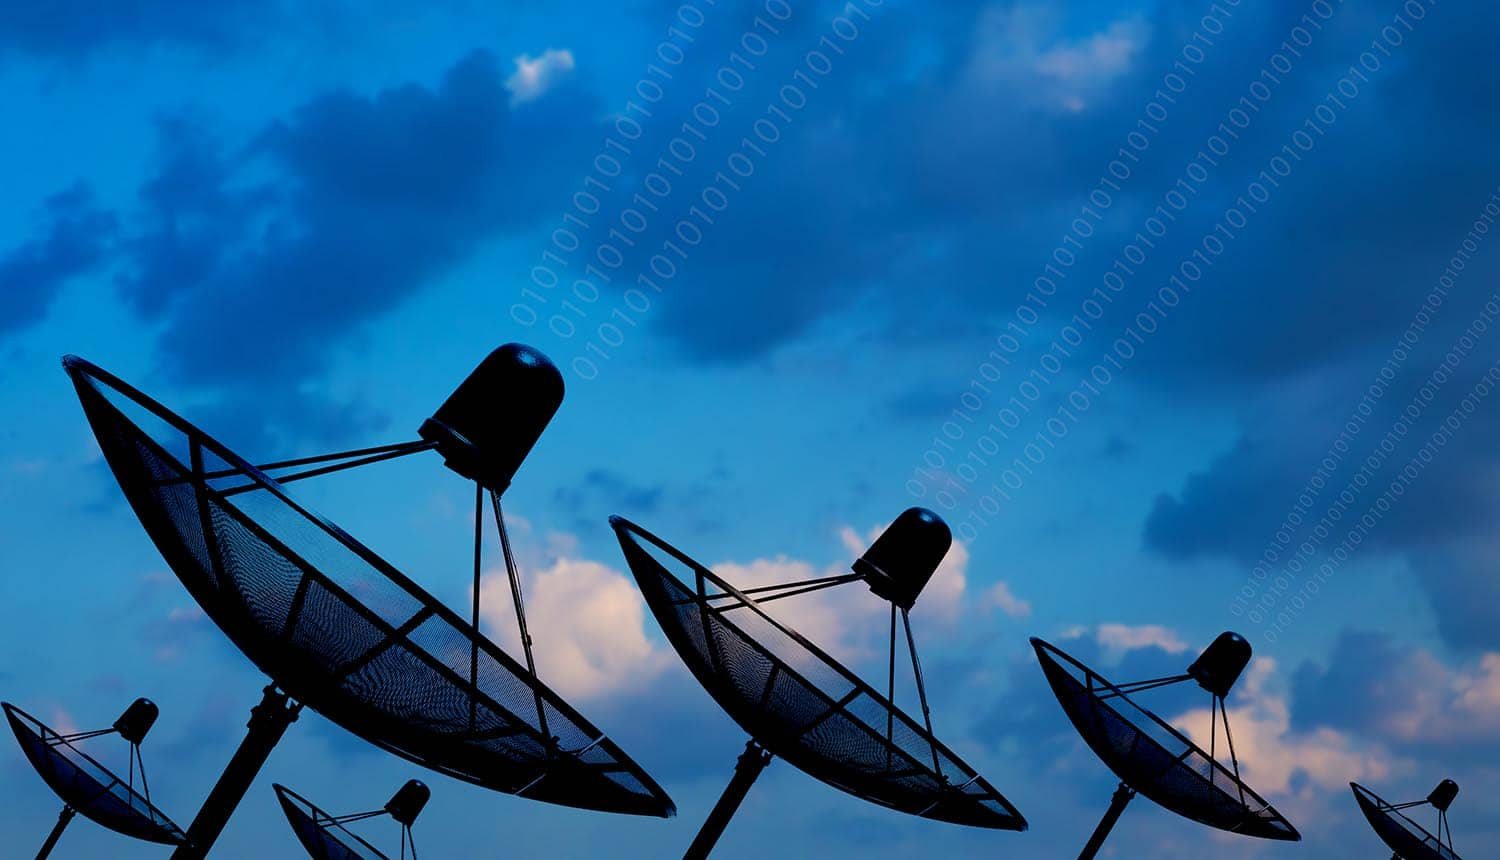 Satellite dish sending data showing cyber attacks for telecom industry